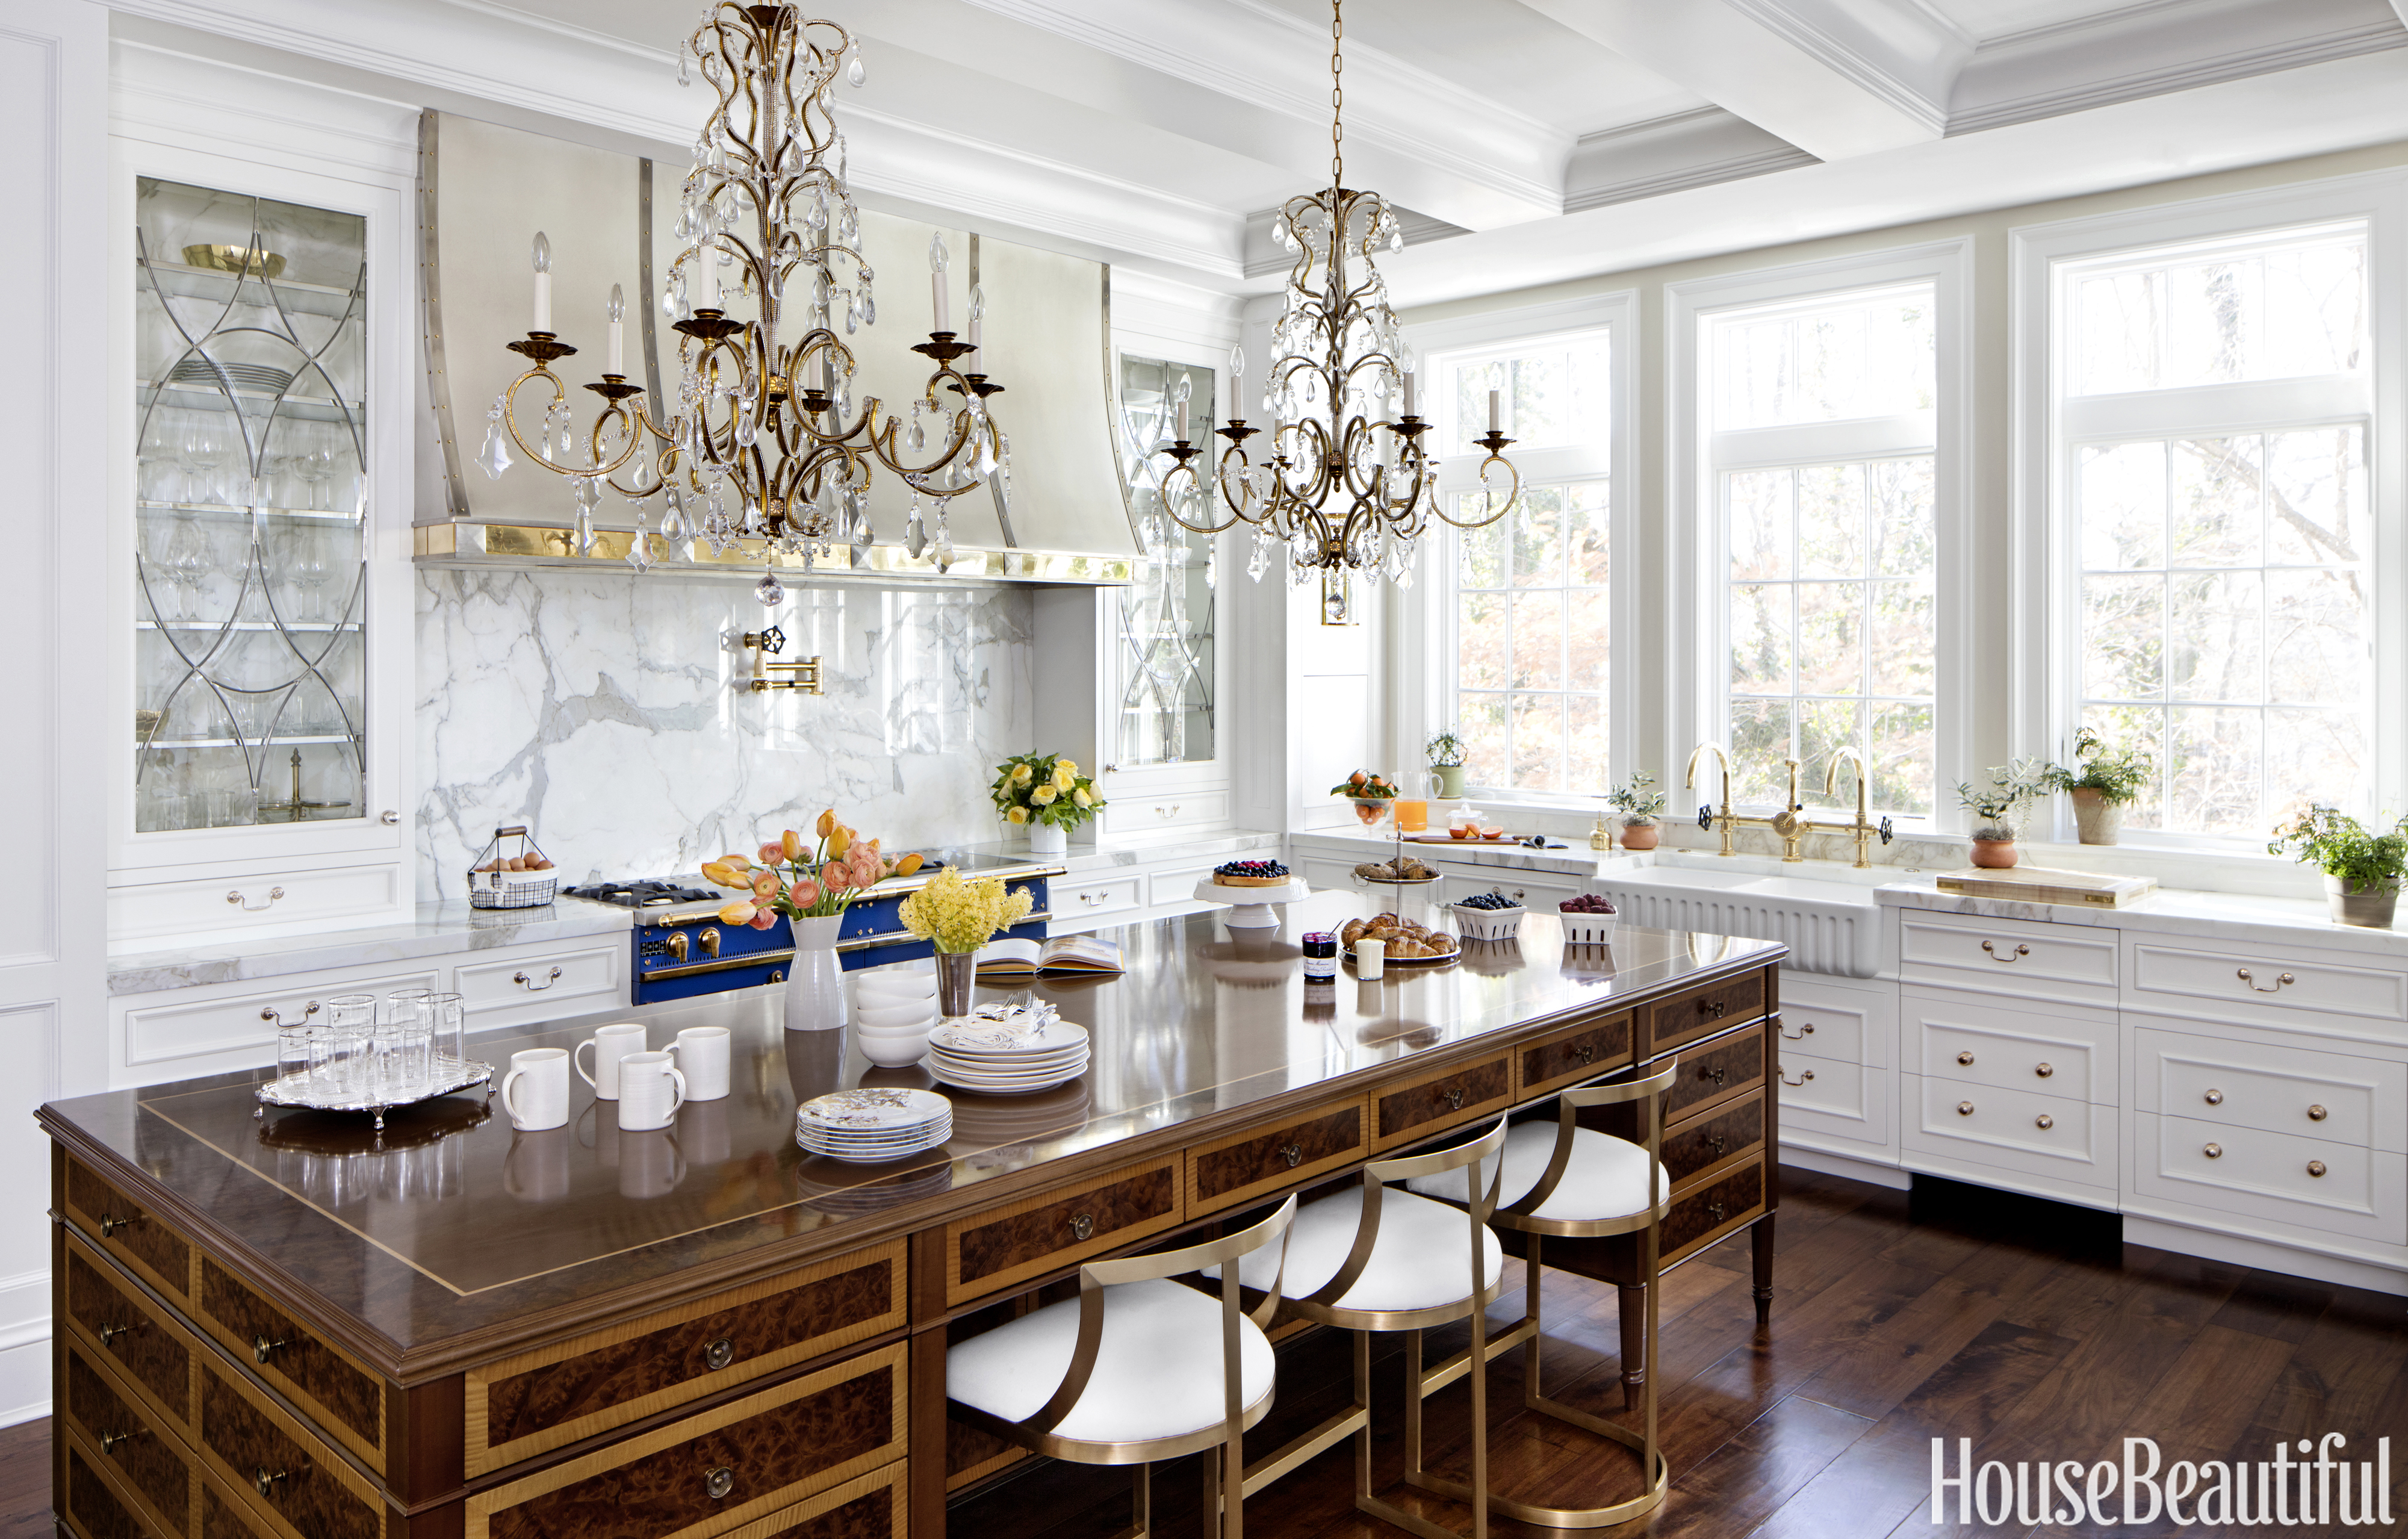 A formal kitchen by richard anuszkiewicz elegant kitchen Beautiful kitchen images